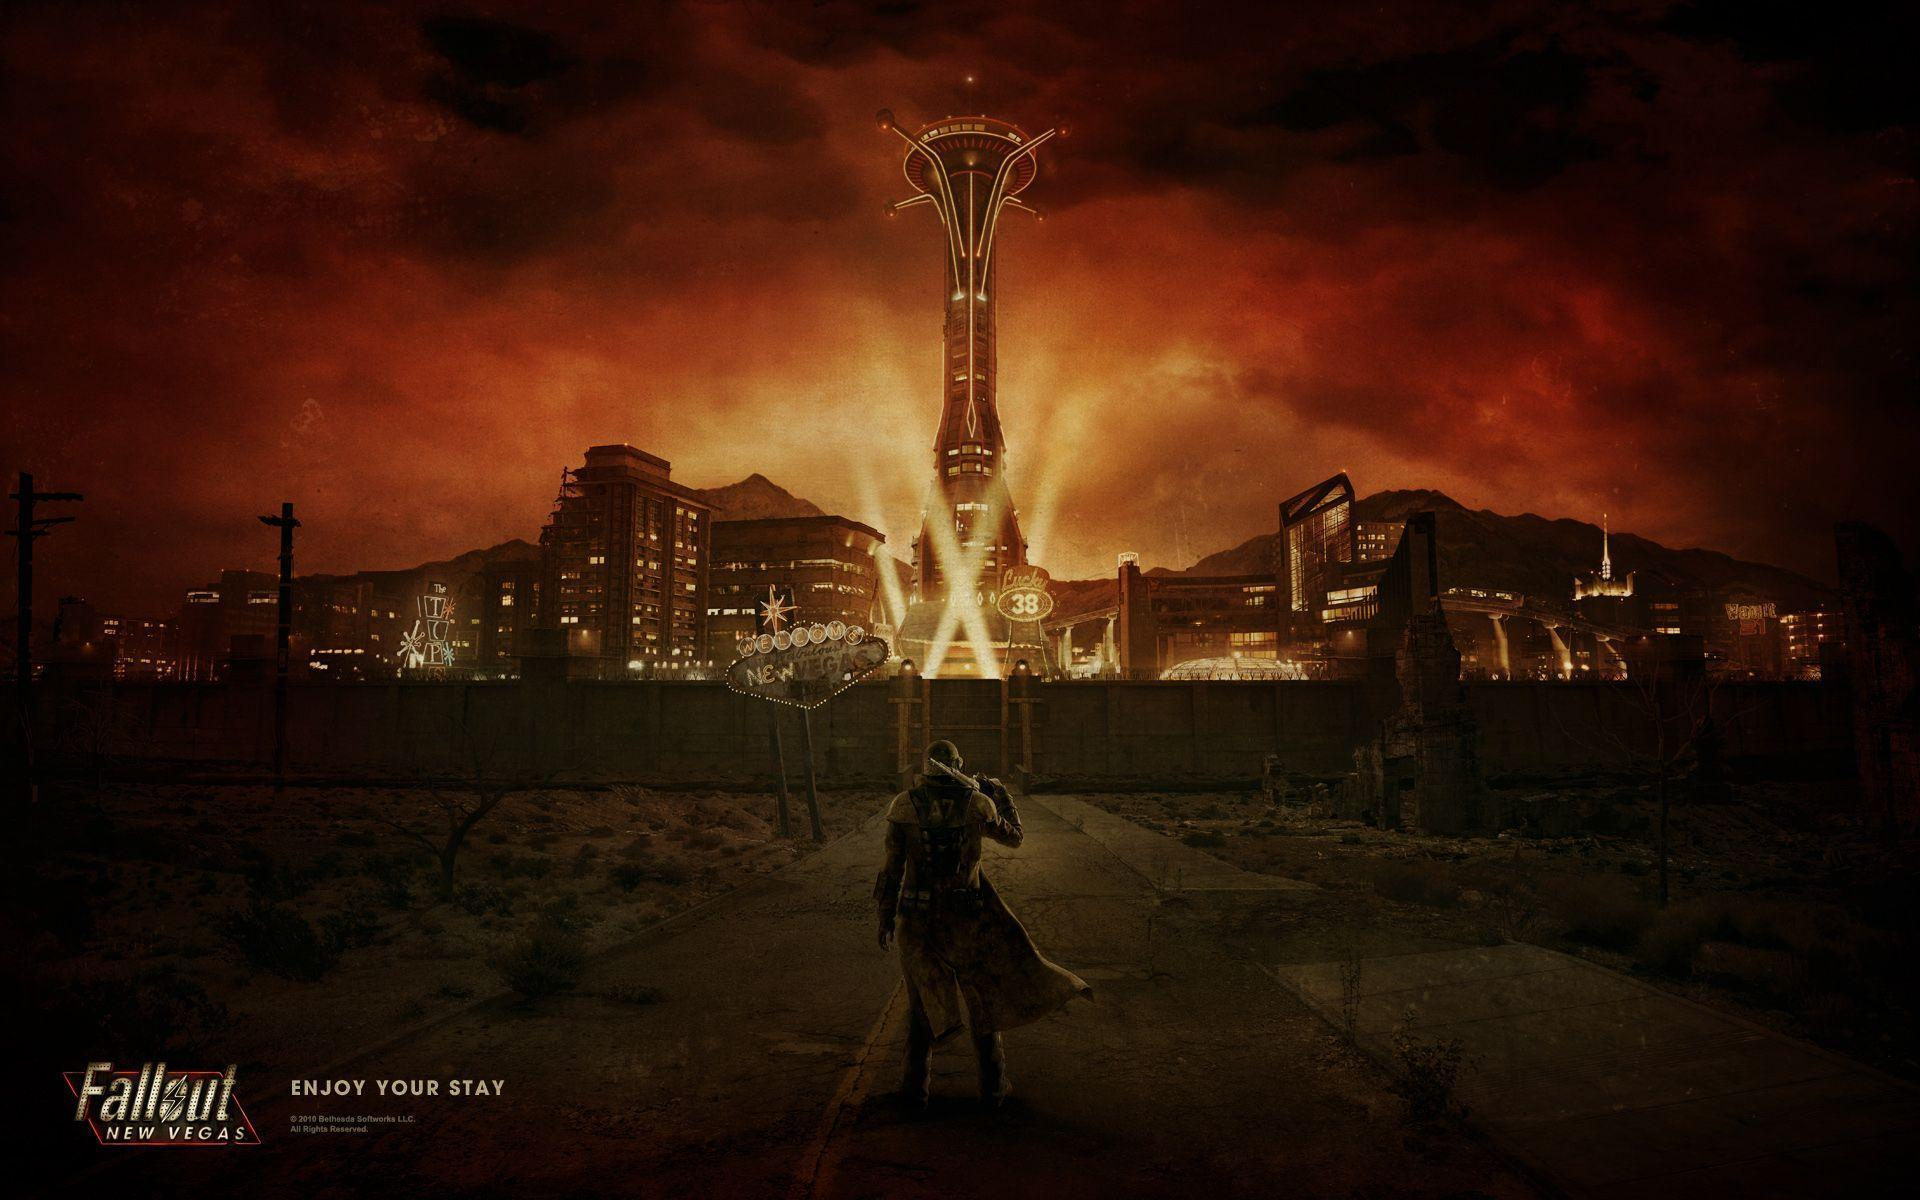 Fallout: New Vegas Wallpapers 1080p - Wallpaper Cave